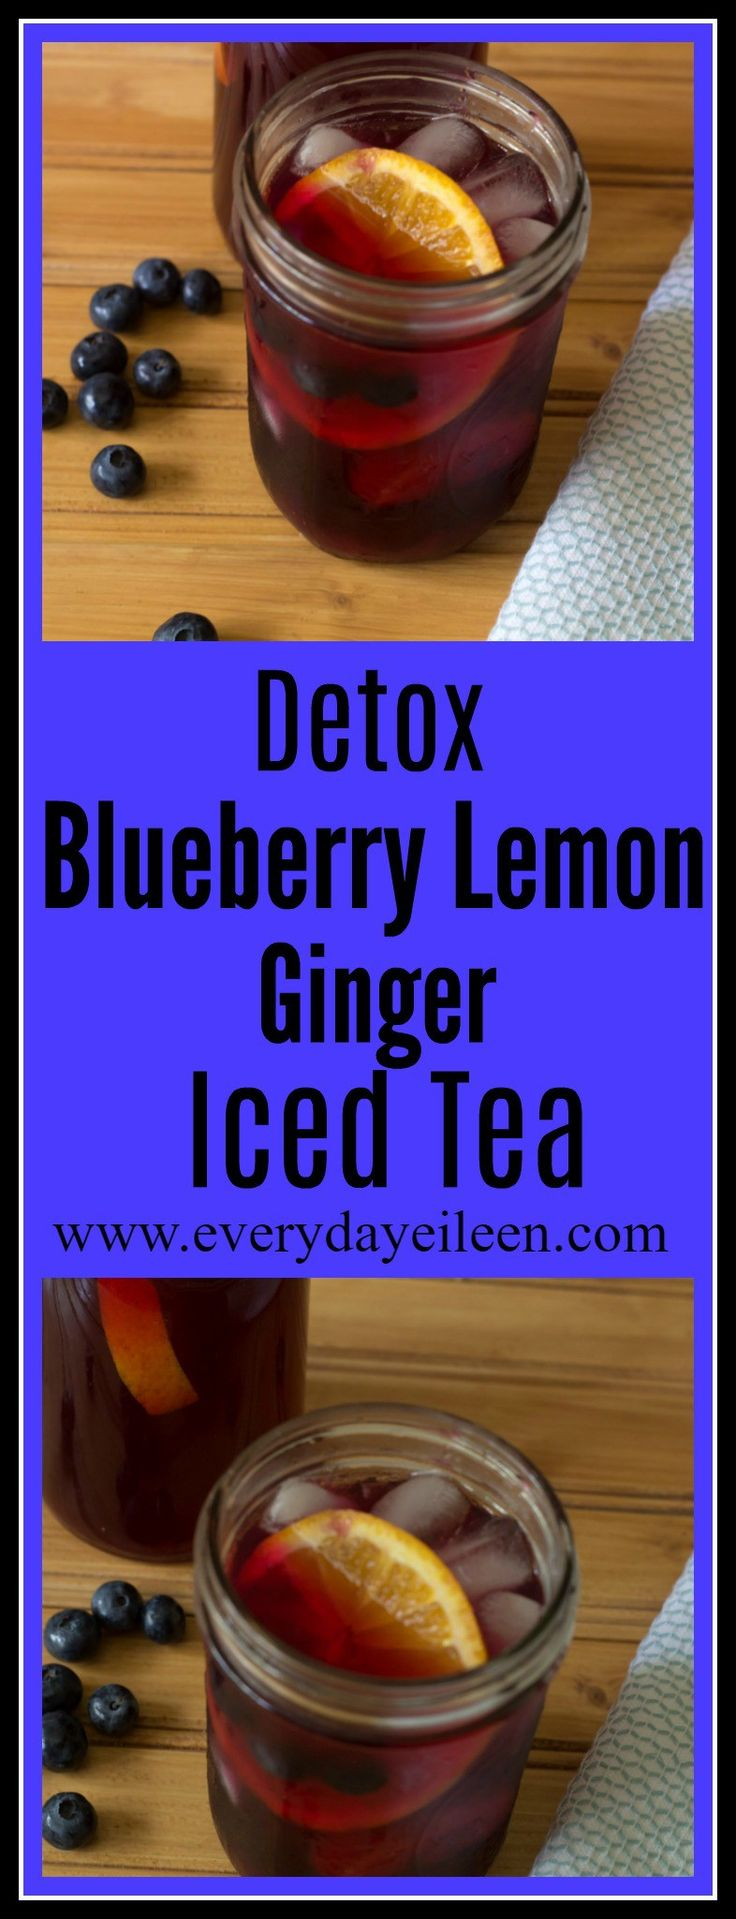 Detox blueberry lemon iced tea is filled with antioxidants from blueberries, ginger and lemon. Perfect cold and also is great as a hot tea!